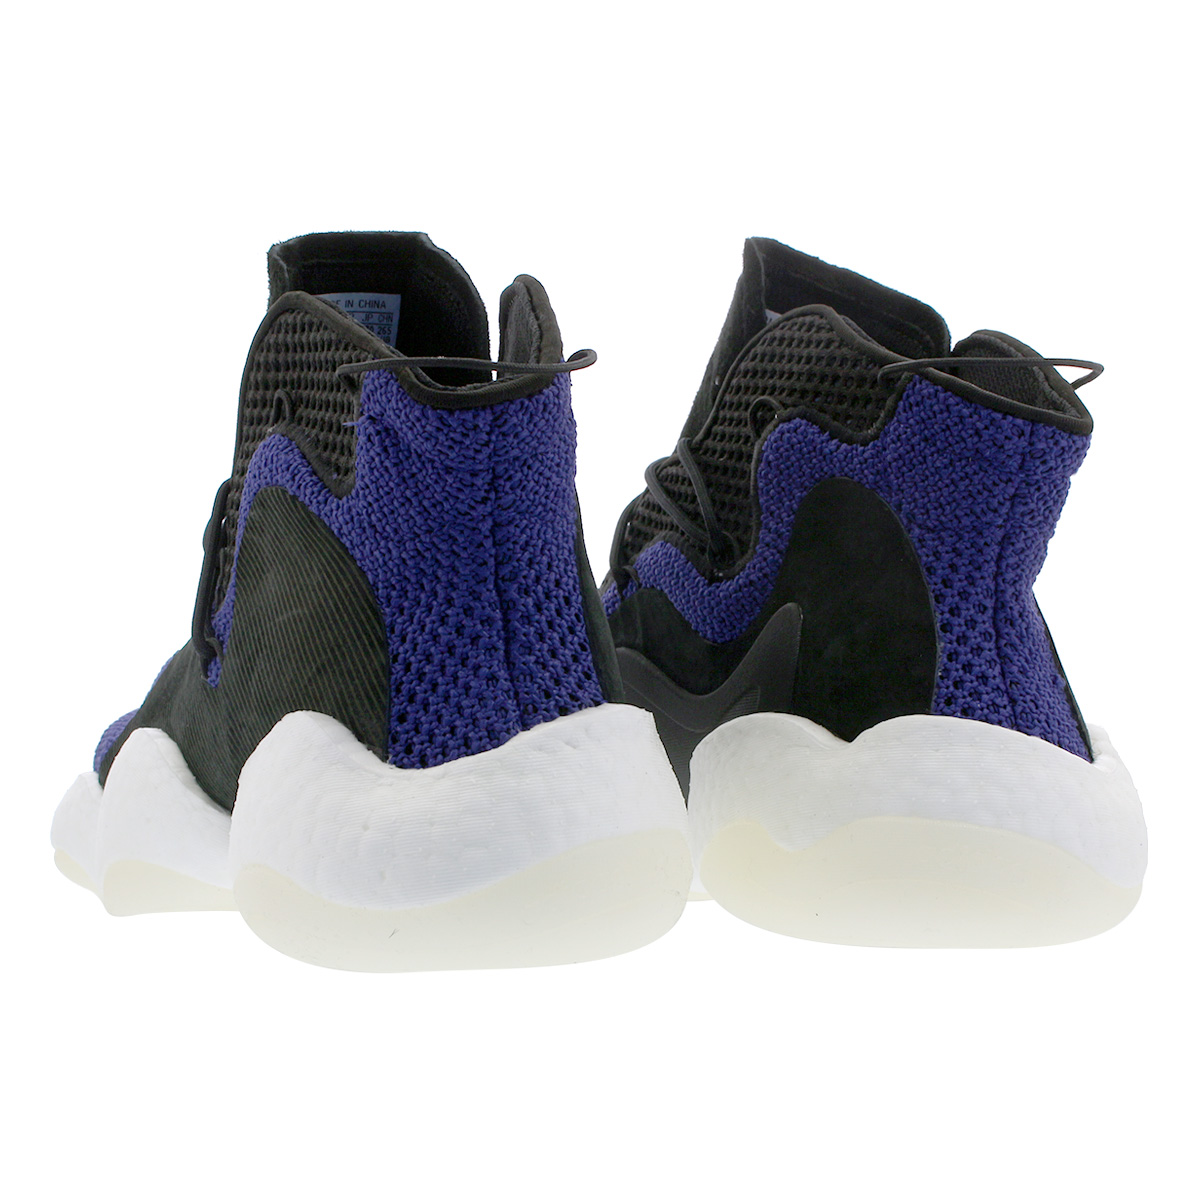 on sale 04d28 3742f adidas CRAZY BYW LVL I Adidas crazy BYW LVL I REAL PURPLECORE  BLACKRUNNING WHITE b37550